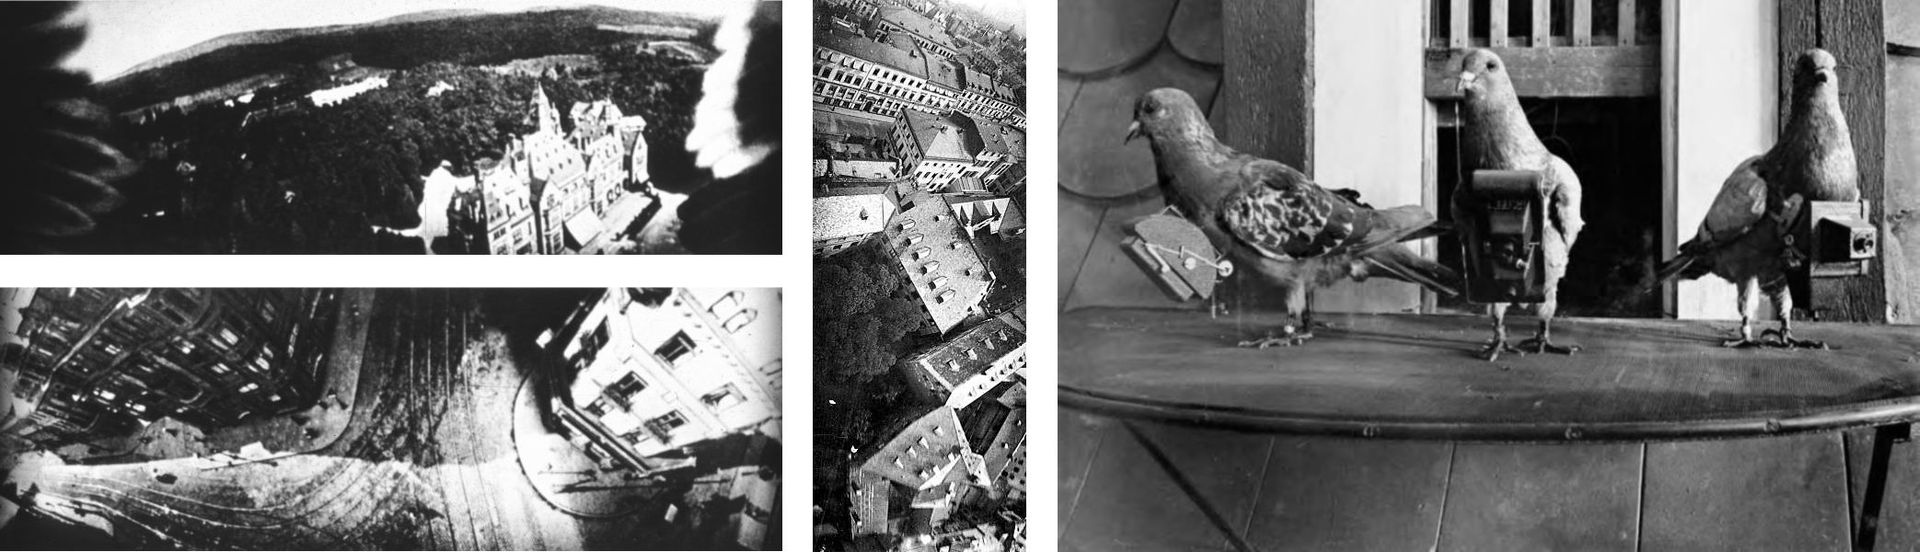 Pigeon_photographers_and_aerial_photographs.jpg